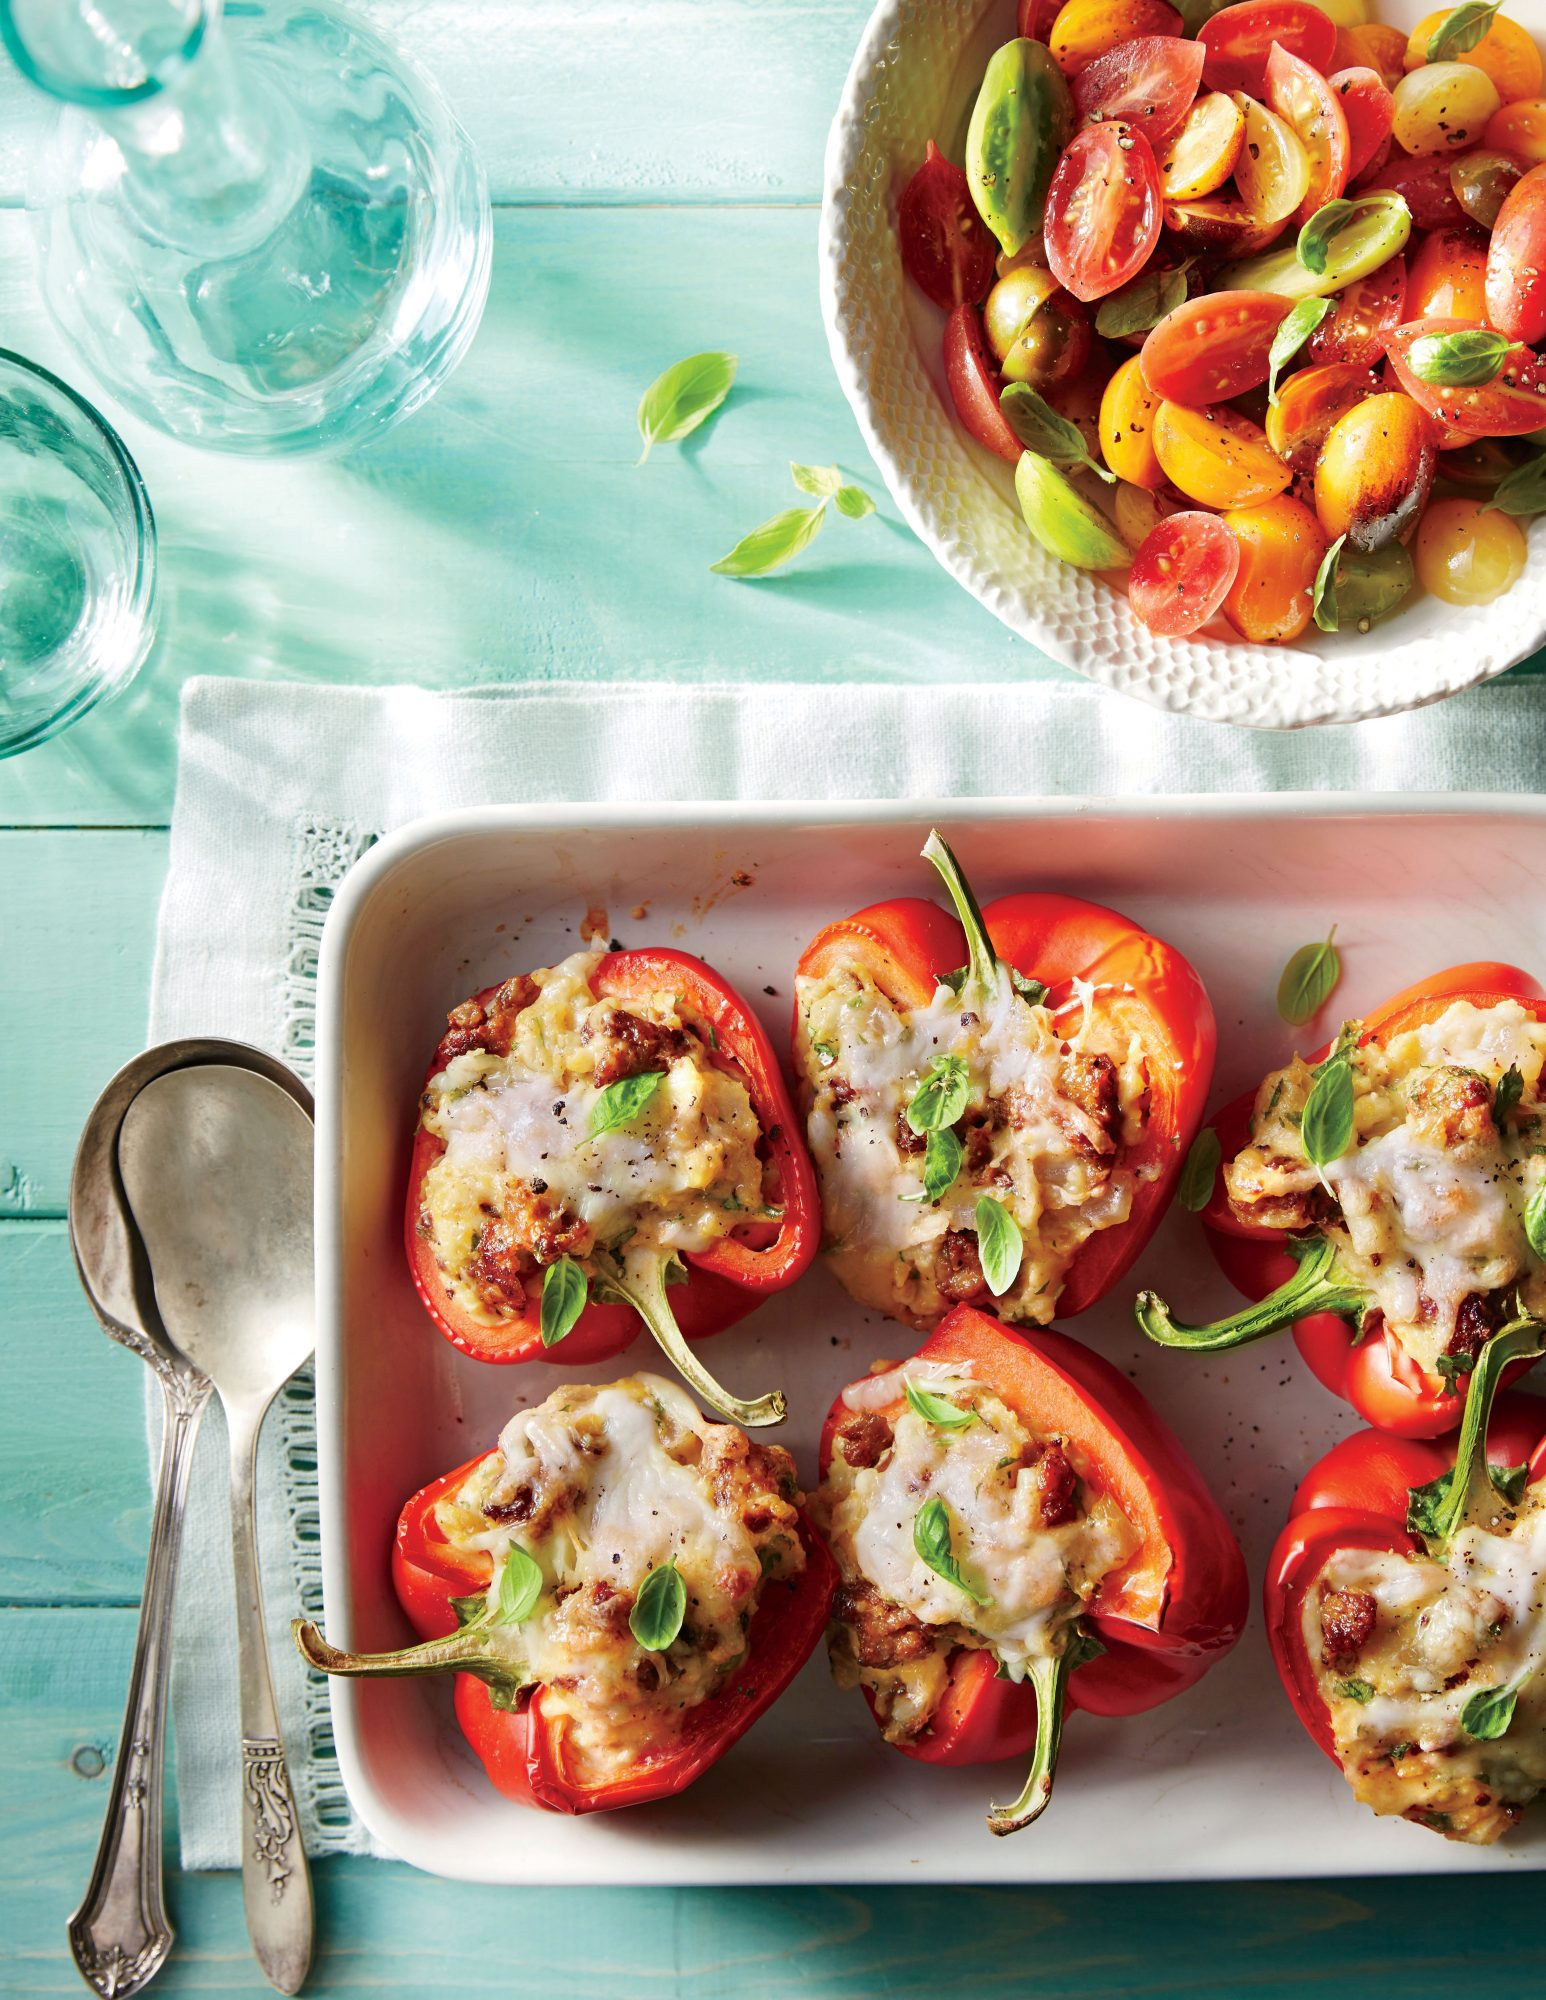 Stuffed Peppers with Grits and Sausage